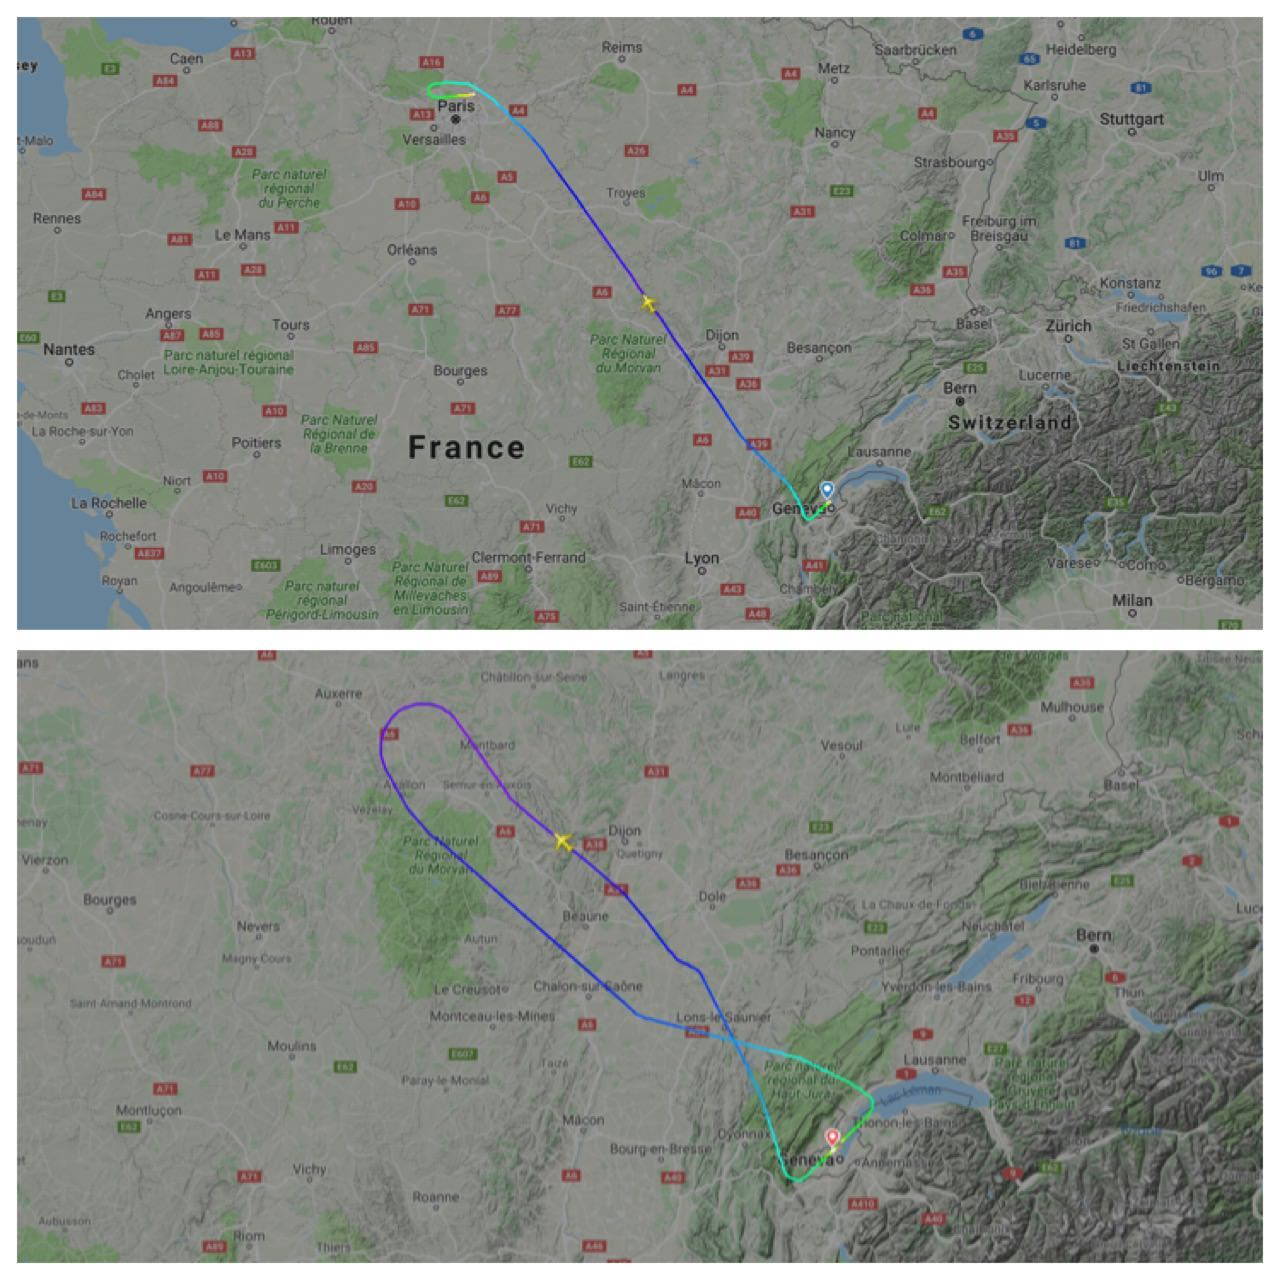 Swiss A220 engine failures fligh tracks